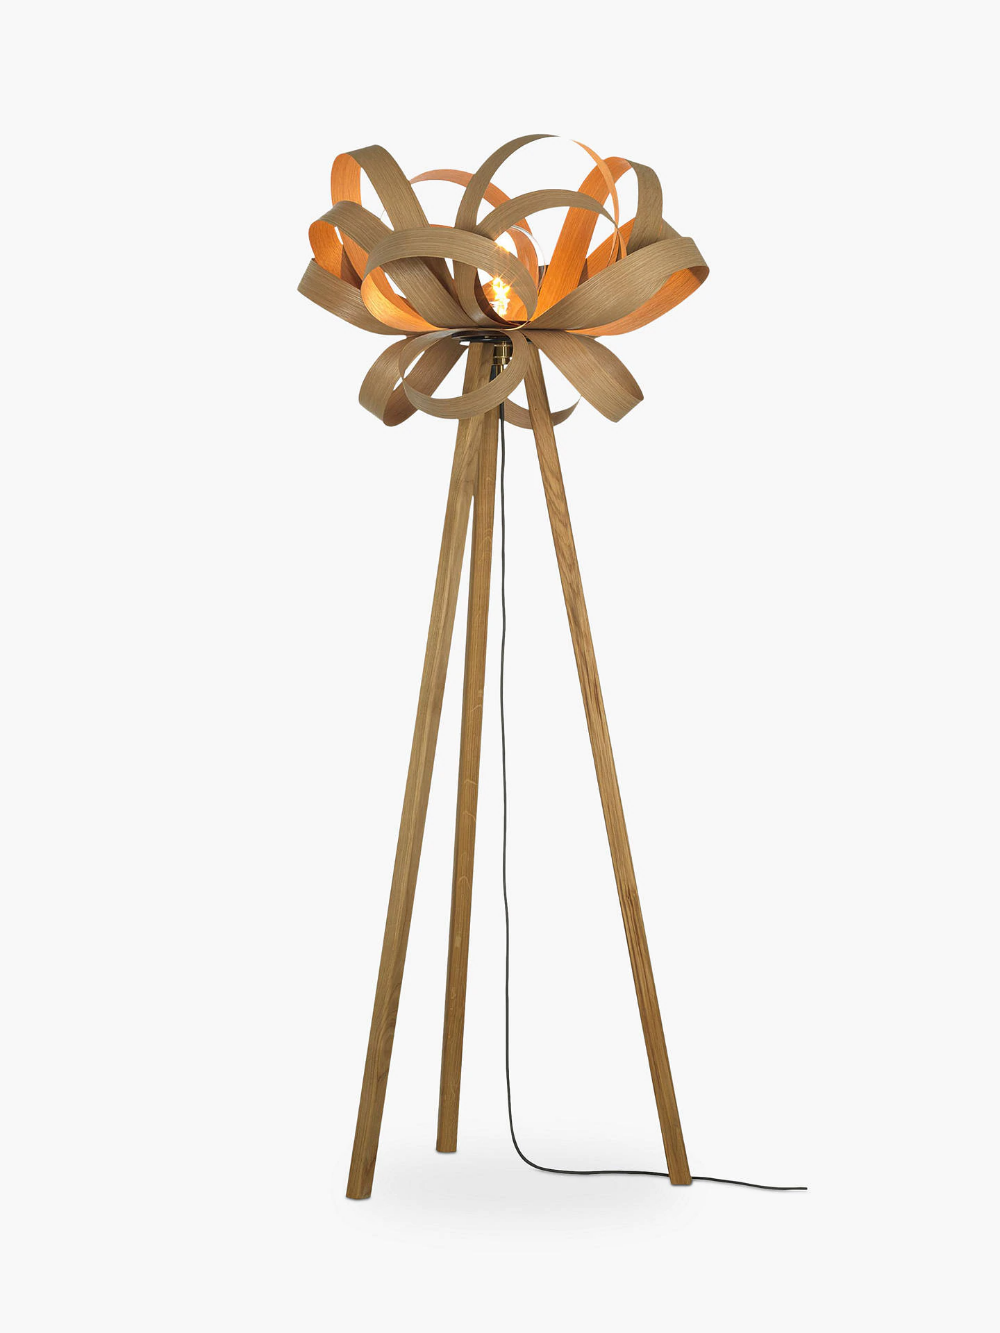 Tom Raffield Skipper Floor Lamp Oak Brass In 2020 Tom Raffield Floor Lamp Tom Raffield Lighting